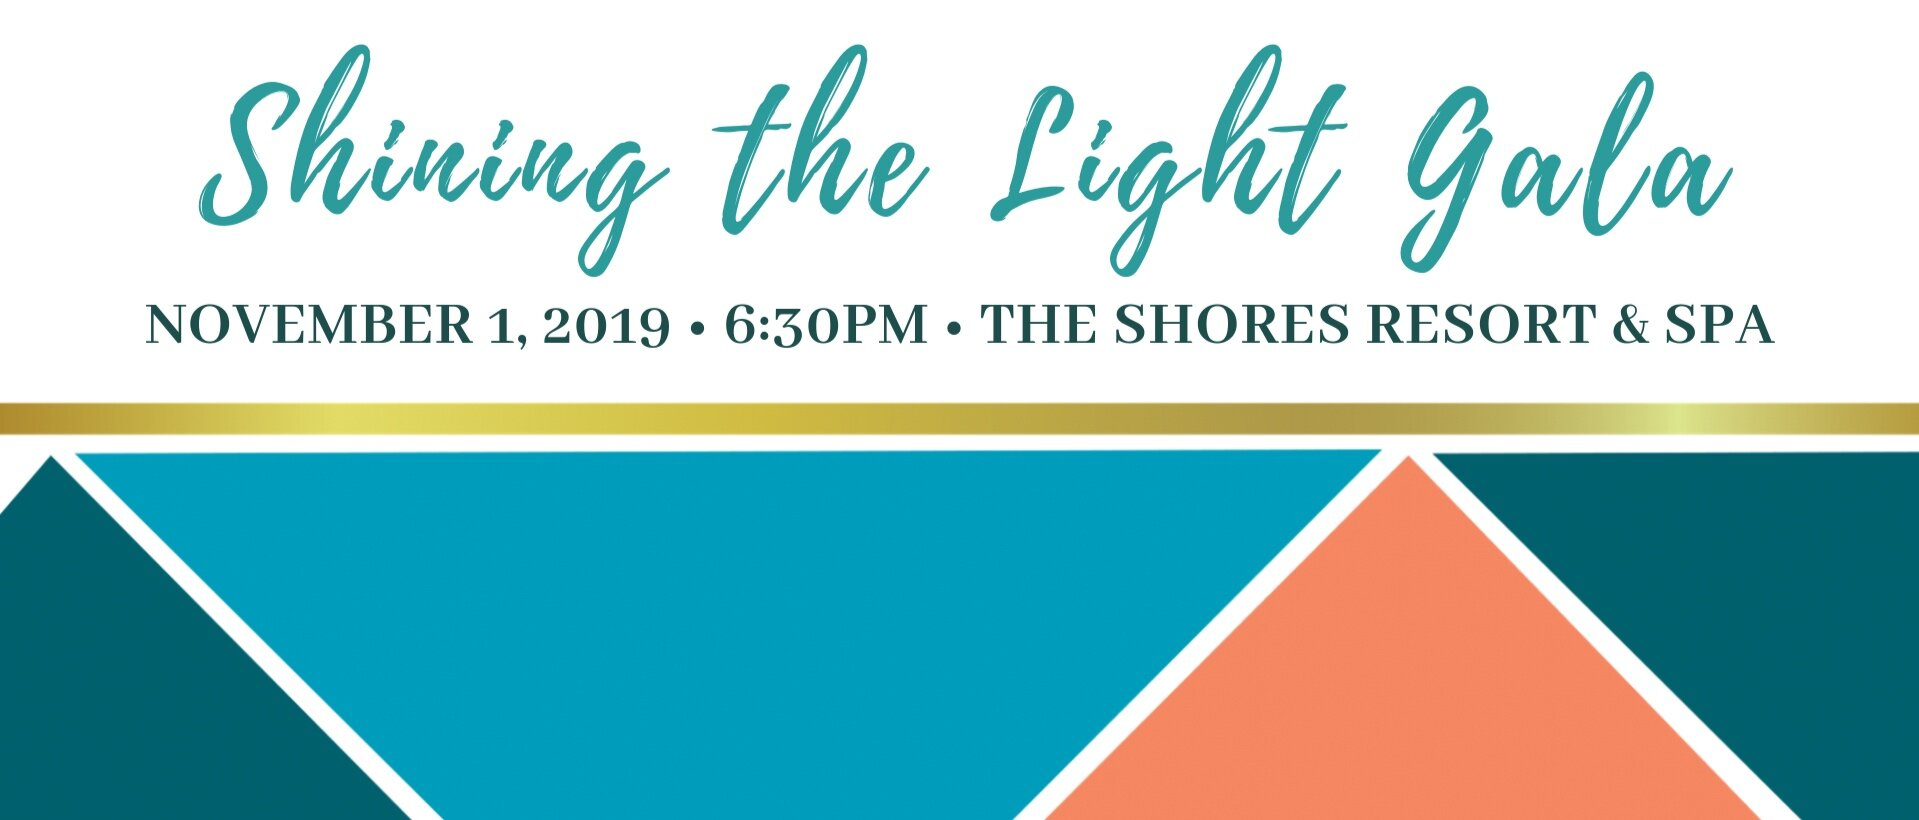 Save the date card for Shining the Light Gala on November 1, 2019 at 6:30pm at The Shores Resort & Spa